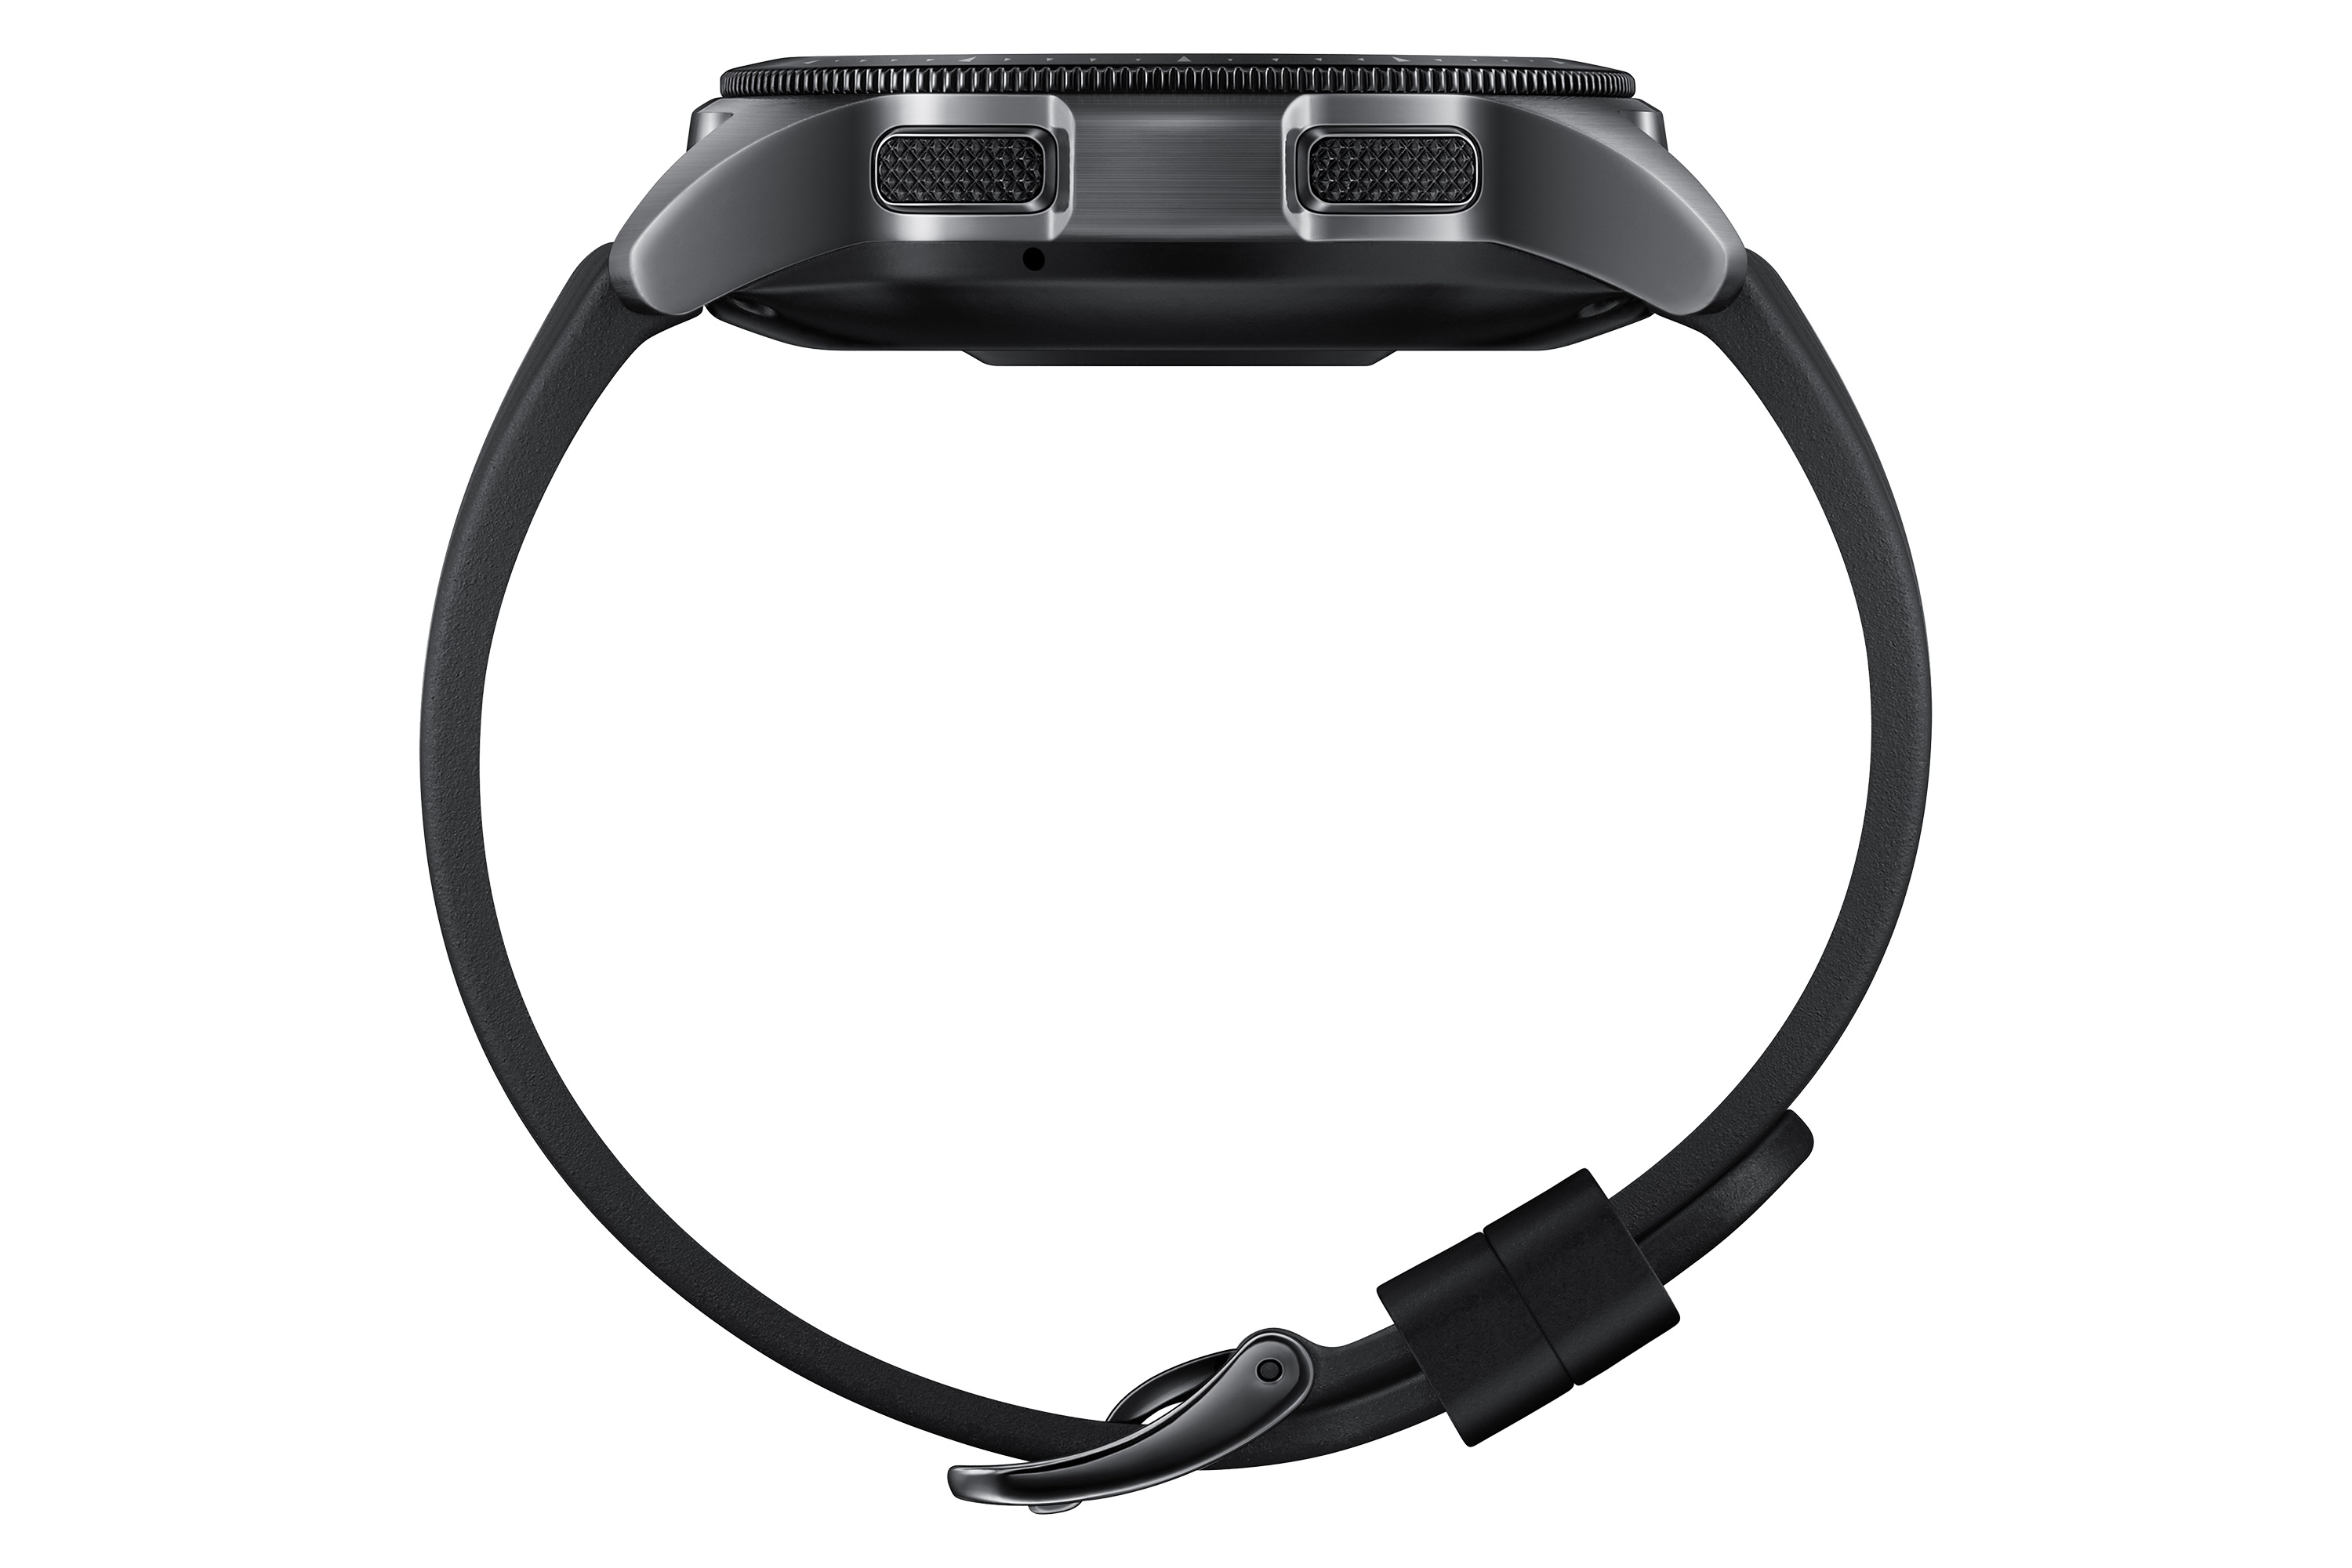 Samsung Galaxy Watch Negro Perspectiva de Medianoche Lateral